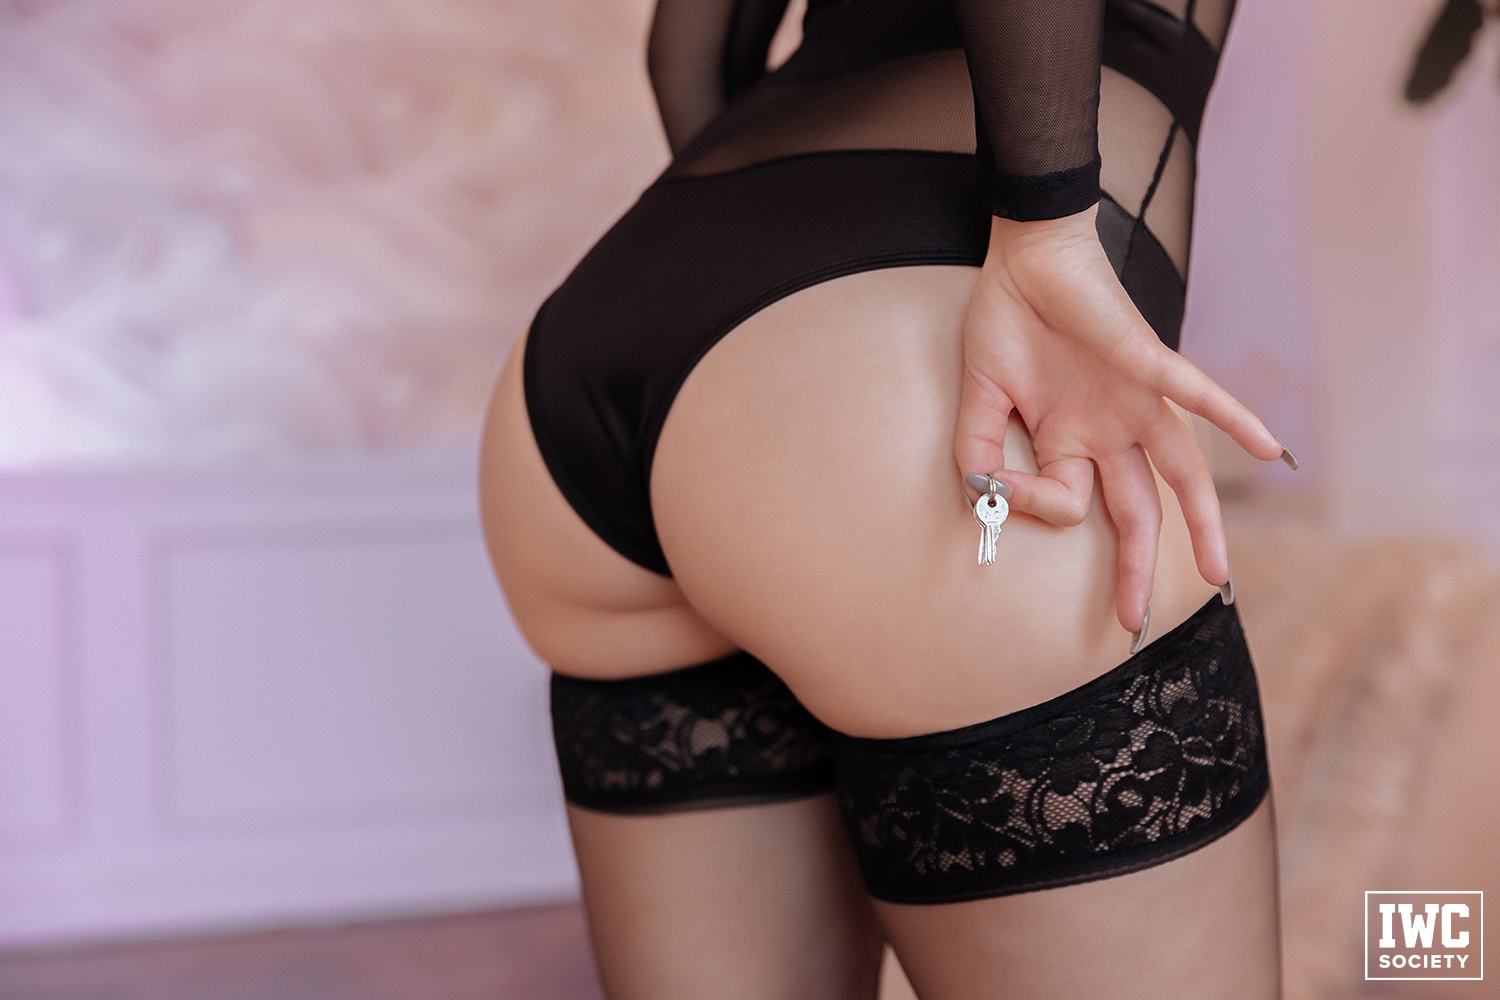 Princess Rea Rays showing off chastity keys and her butt in black panties